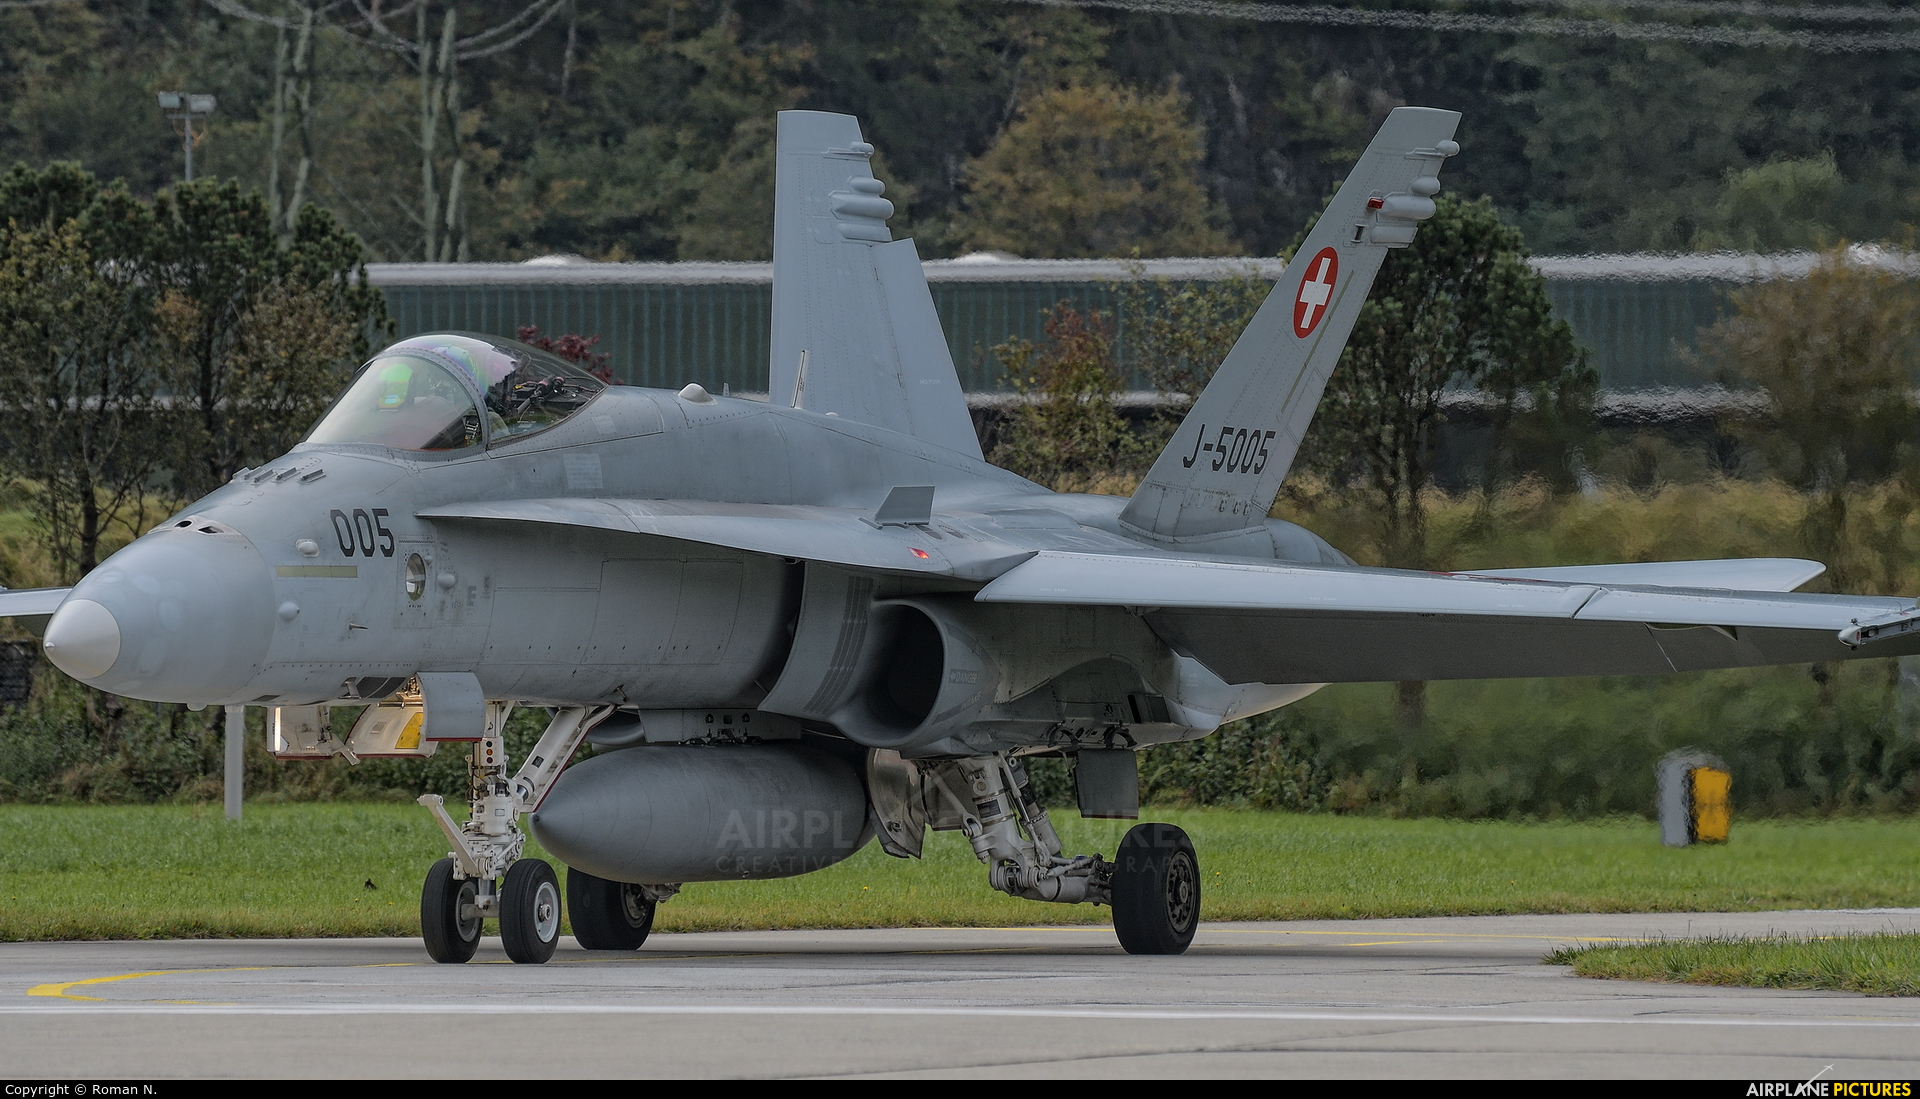 Switzerland - Air Force J-5005 aircraft at Meiringen